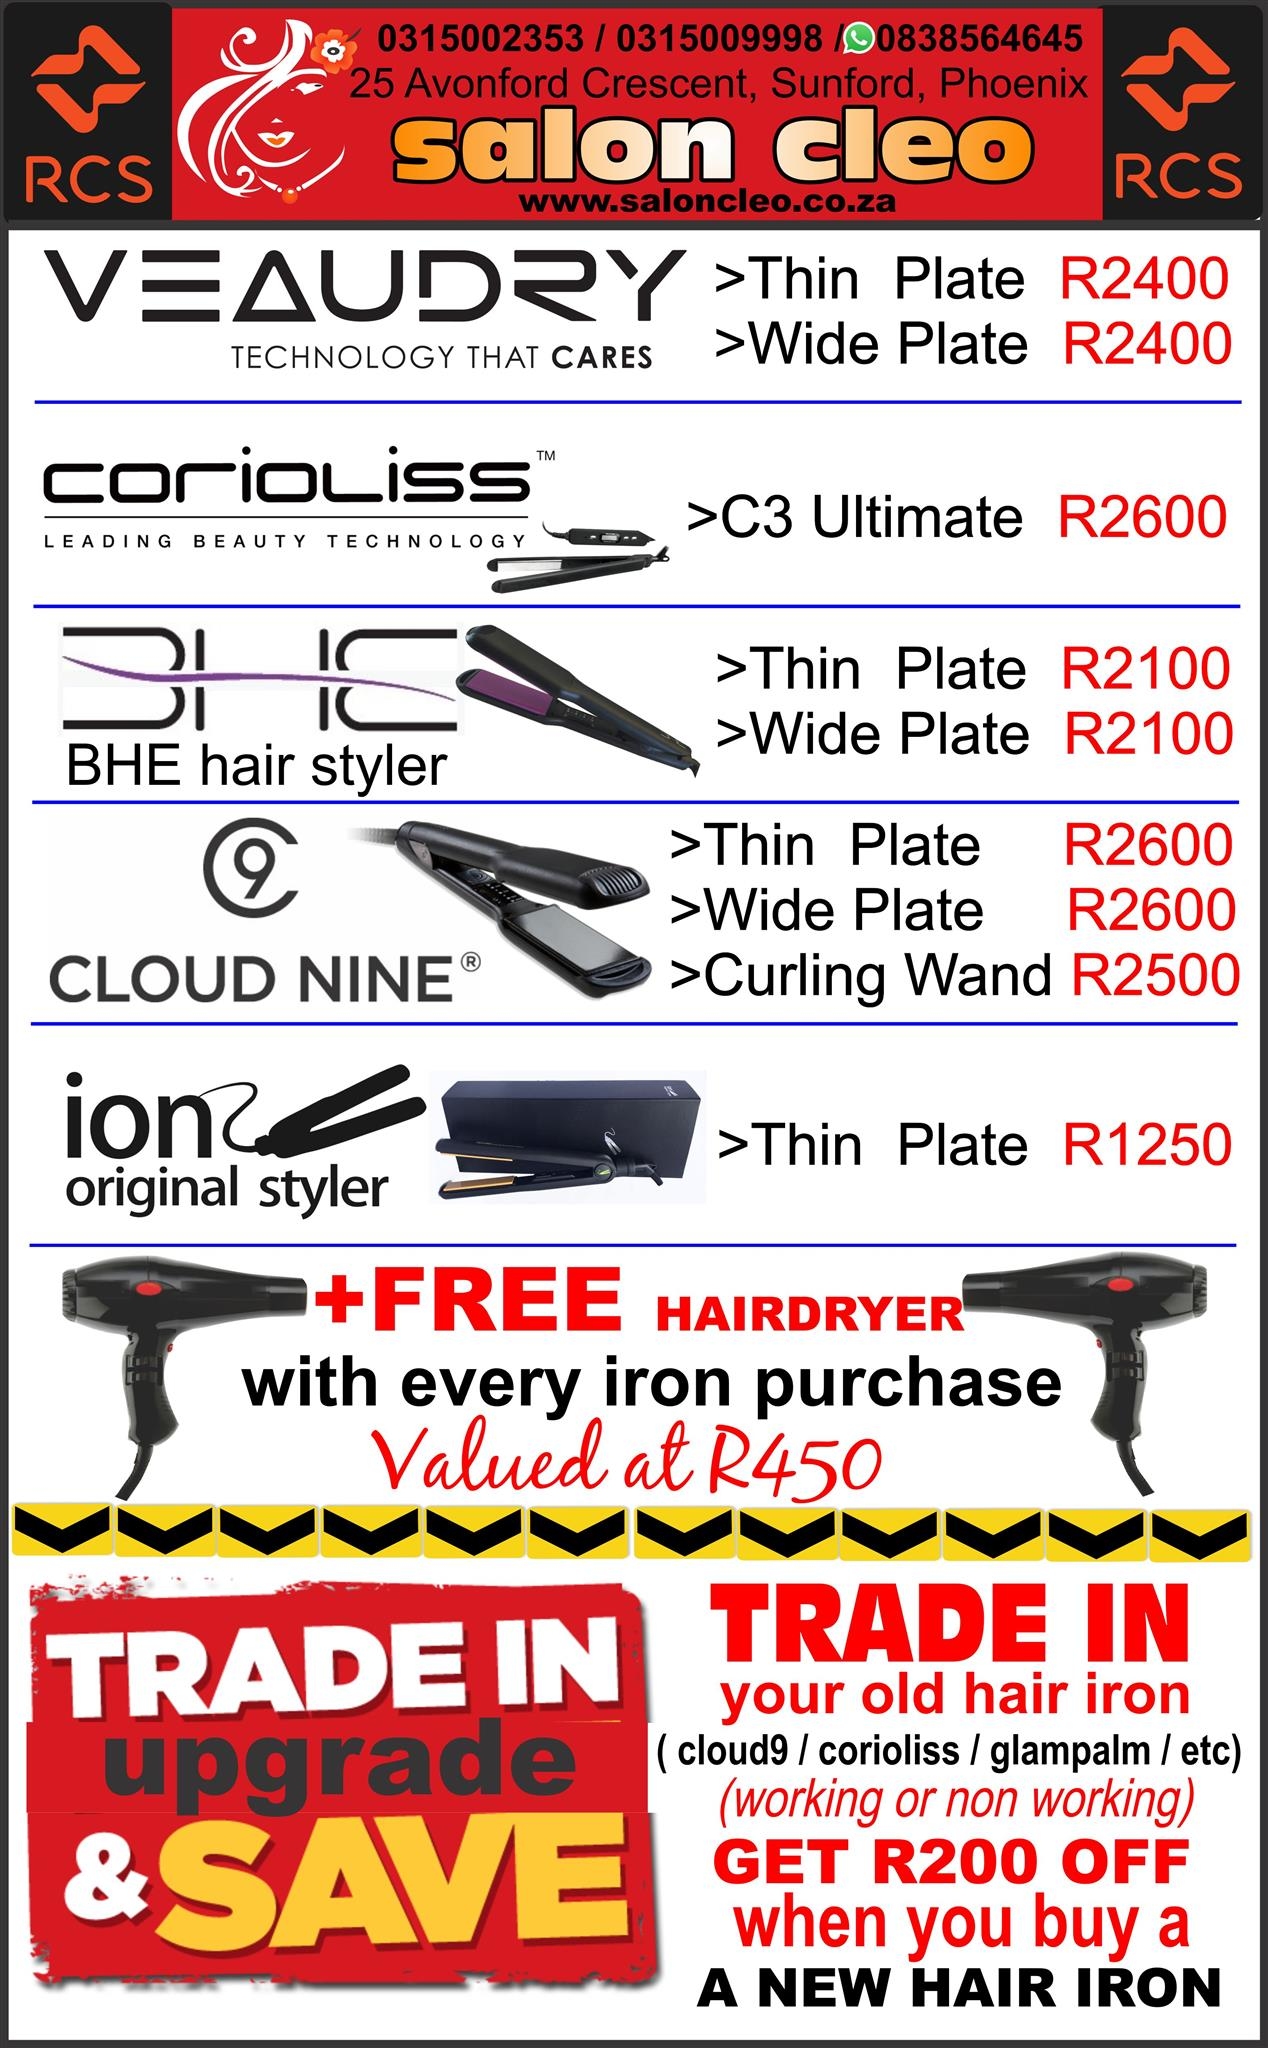 ghd cloud 9 bhe coriolliss veaudry hair iron stylers ion orginal hair iron straighteners salon cleo phoenix 0315002353 ghd hair straighteners bhe styers veaudry hair iron corioliss hair irons veaudry irons salon cleo phoenix veaudry salon cleo durban 0315009998